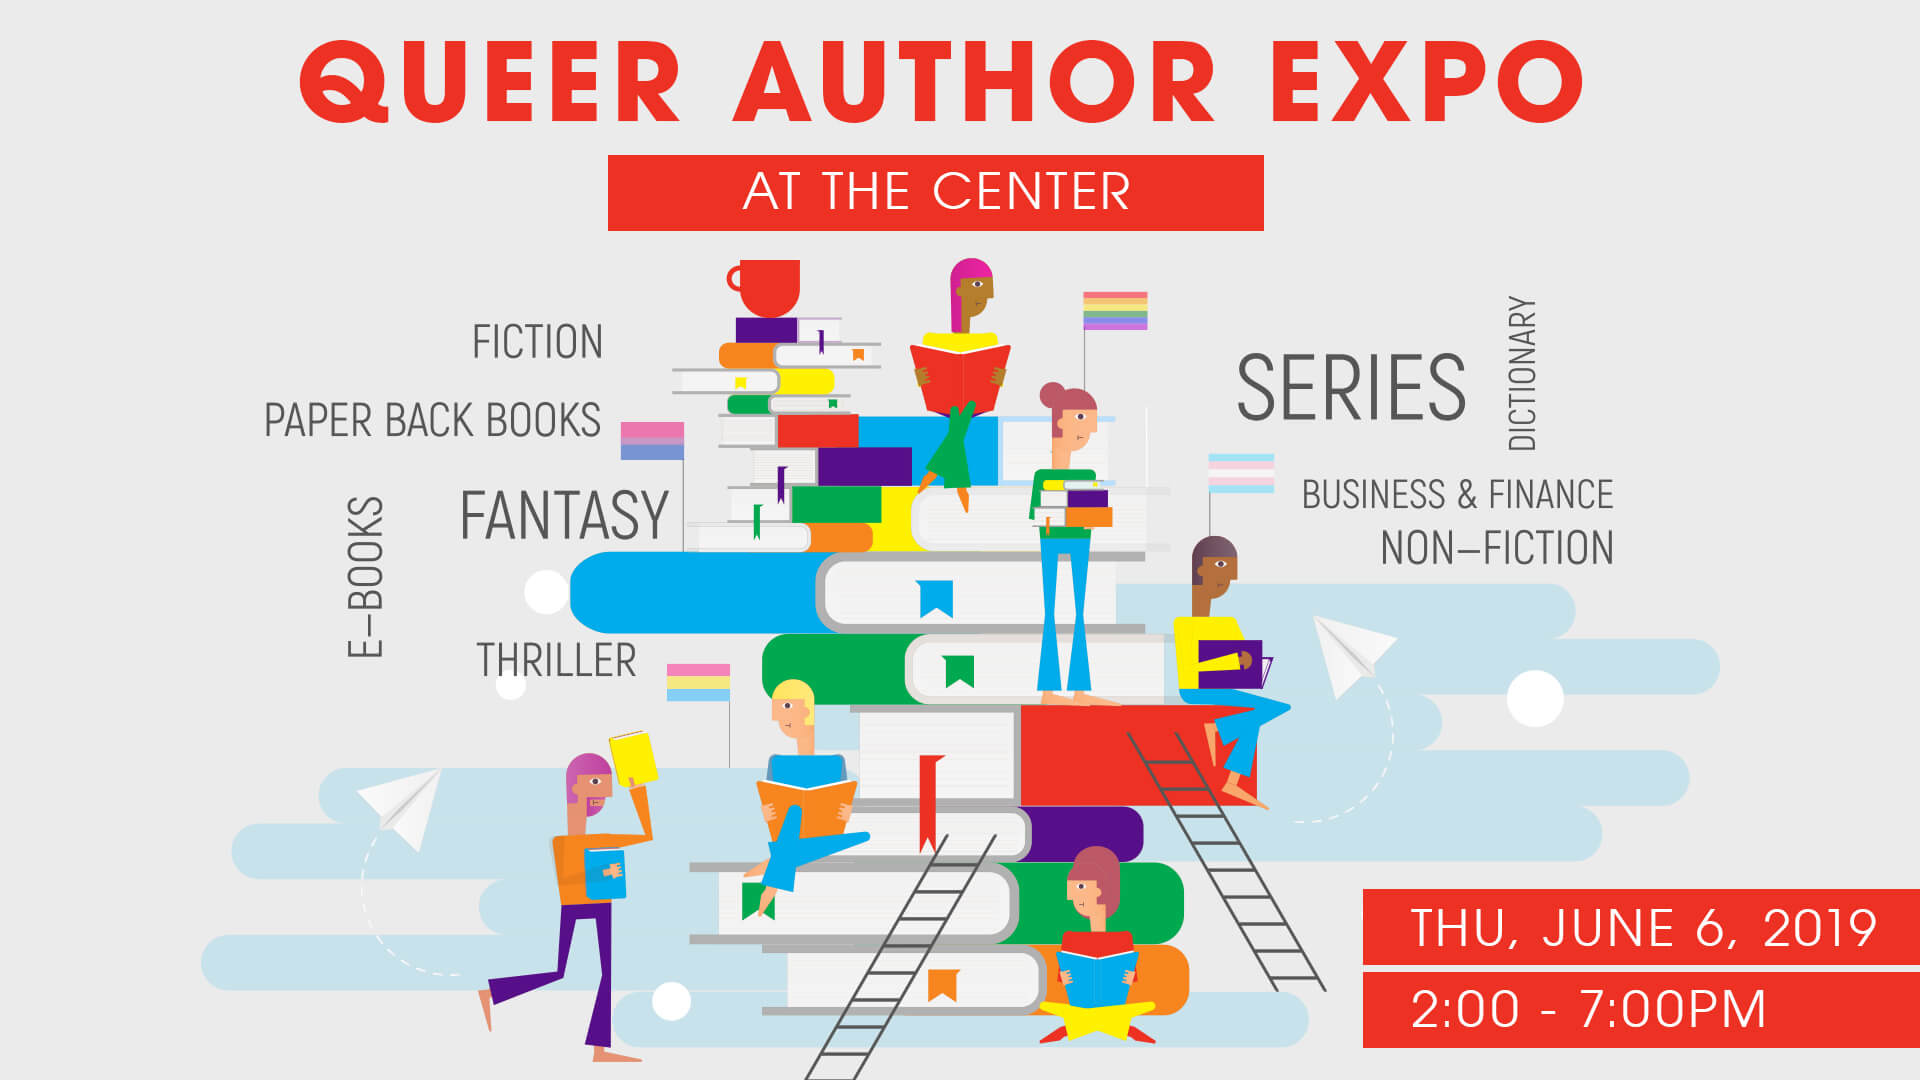 Queer Author Expo